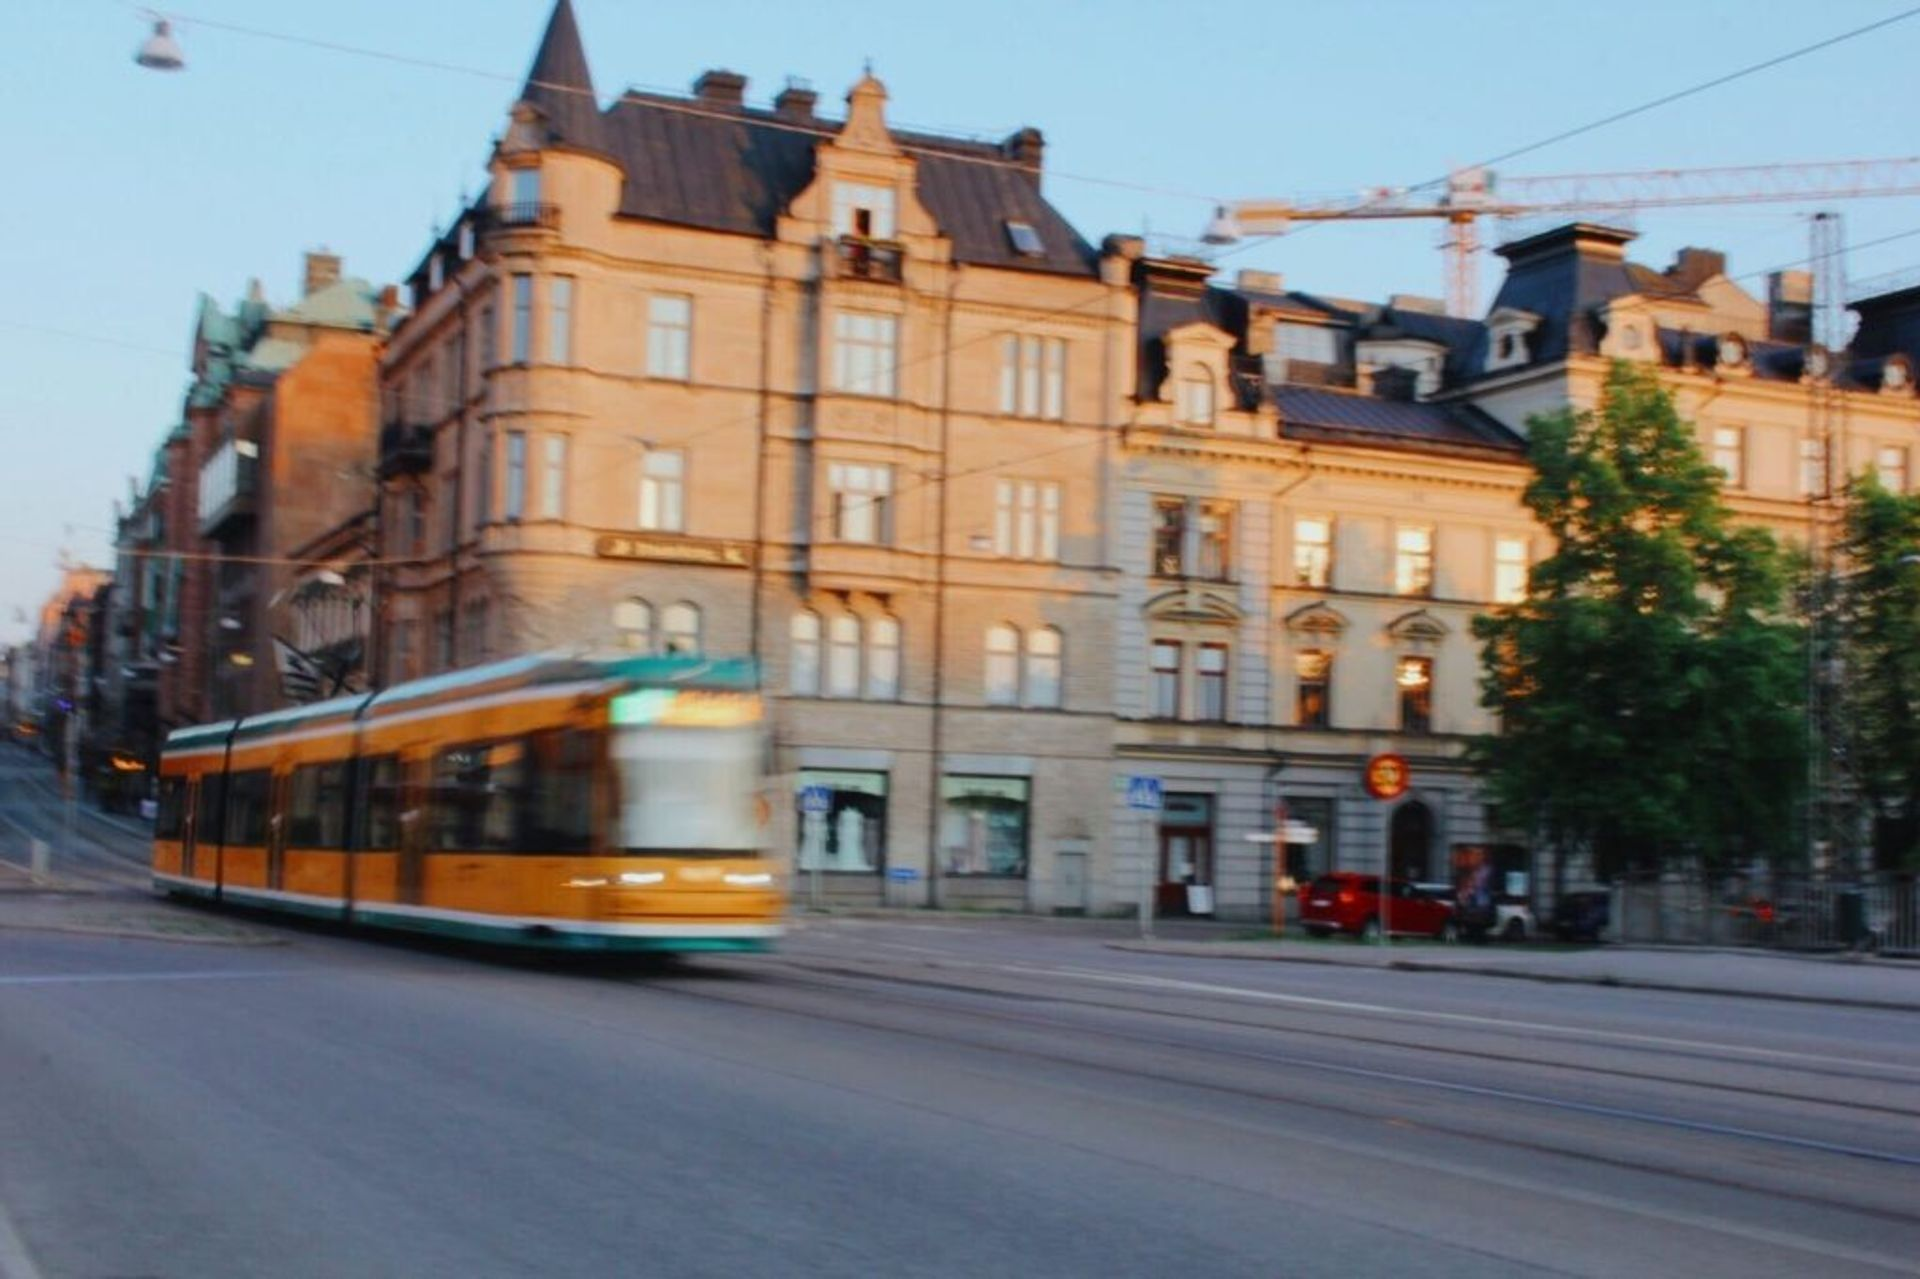 A yellow and green tram.